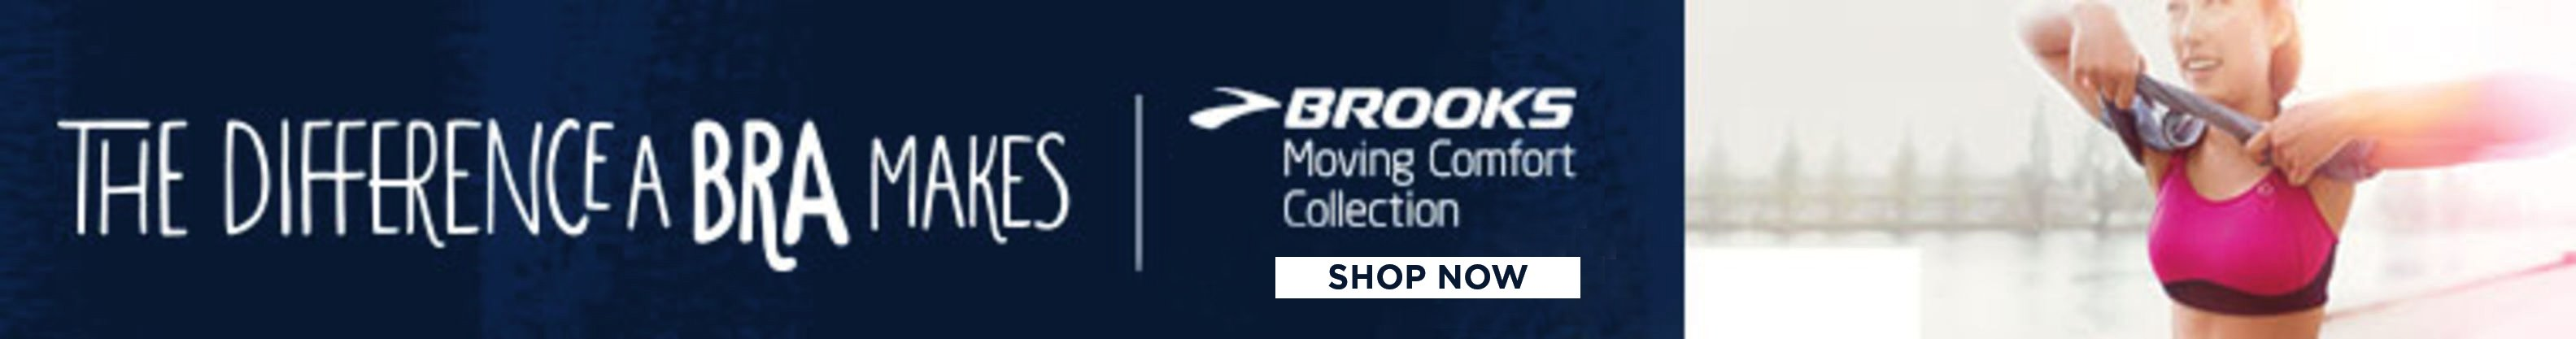 Shop Moving Comfort by Brooks